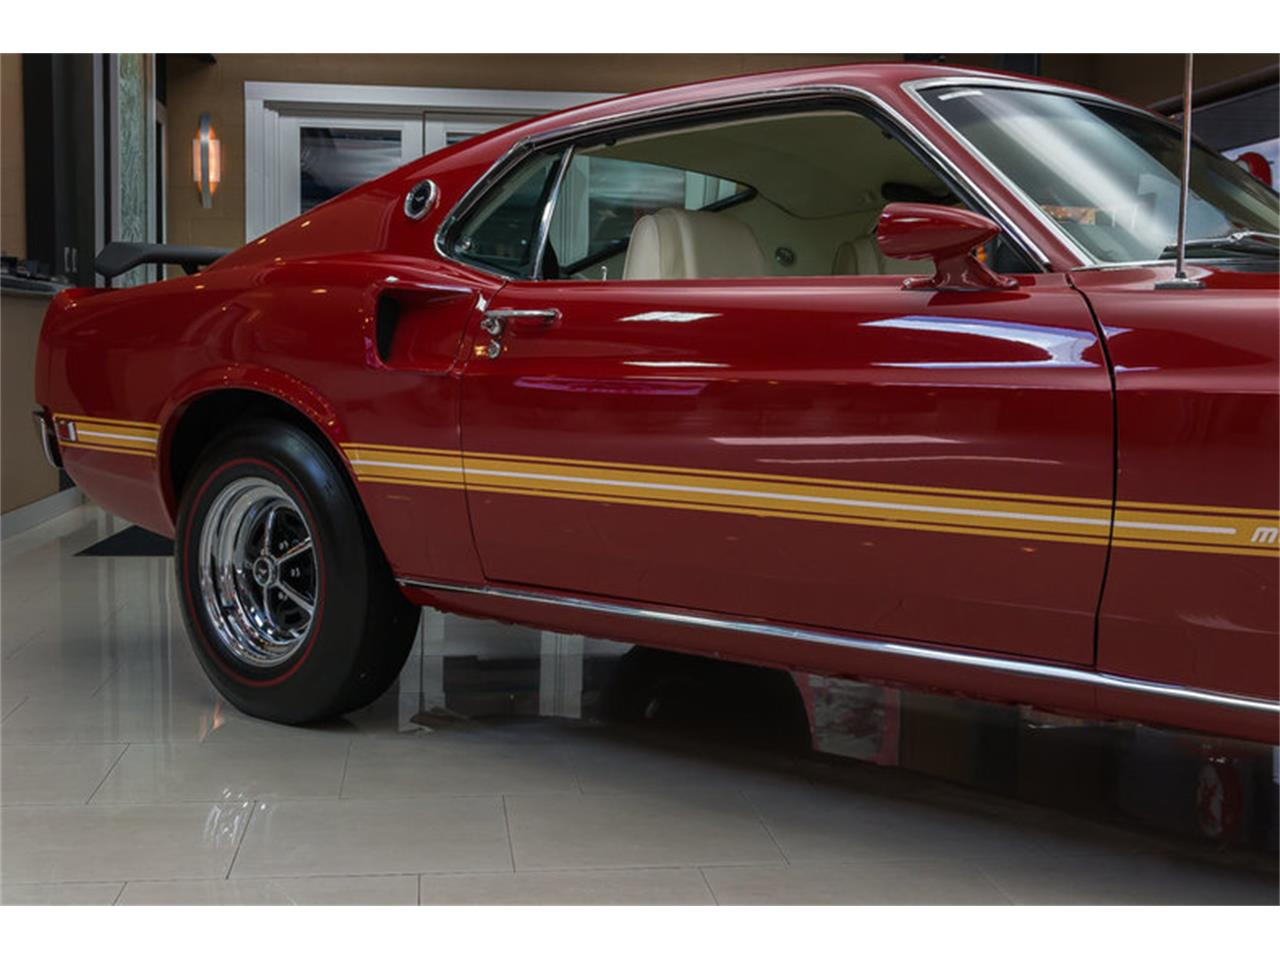 Large Picture of '69 Mustang Mach 1 S Code - $59,900.00 Offered by Vanguard Motor Sales - IS3G